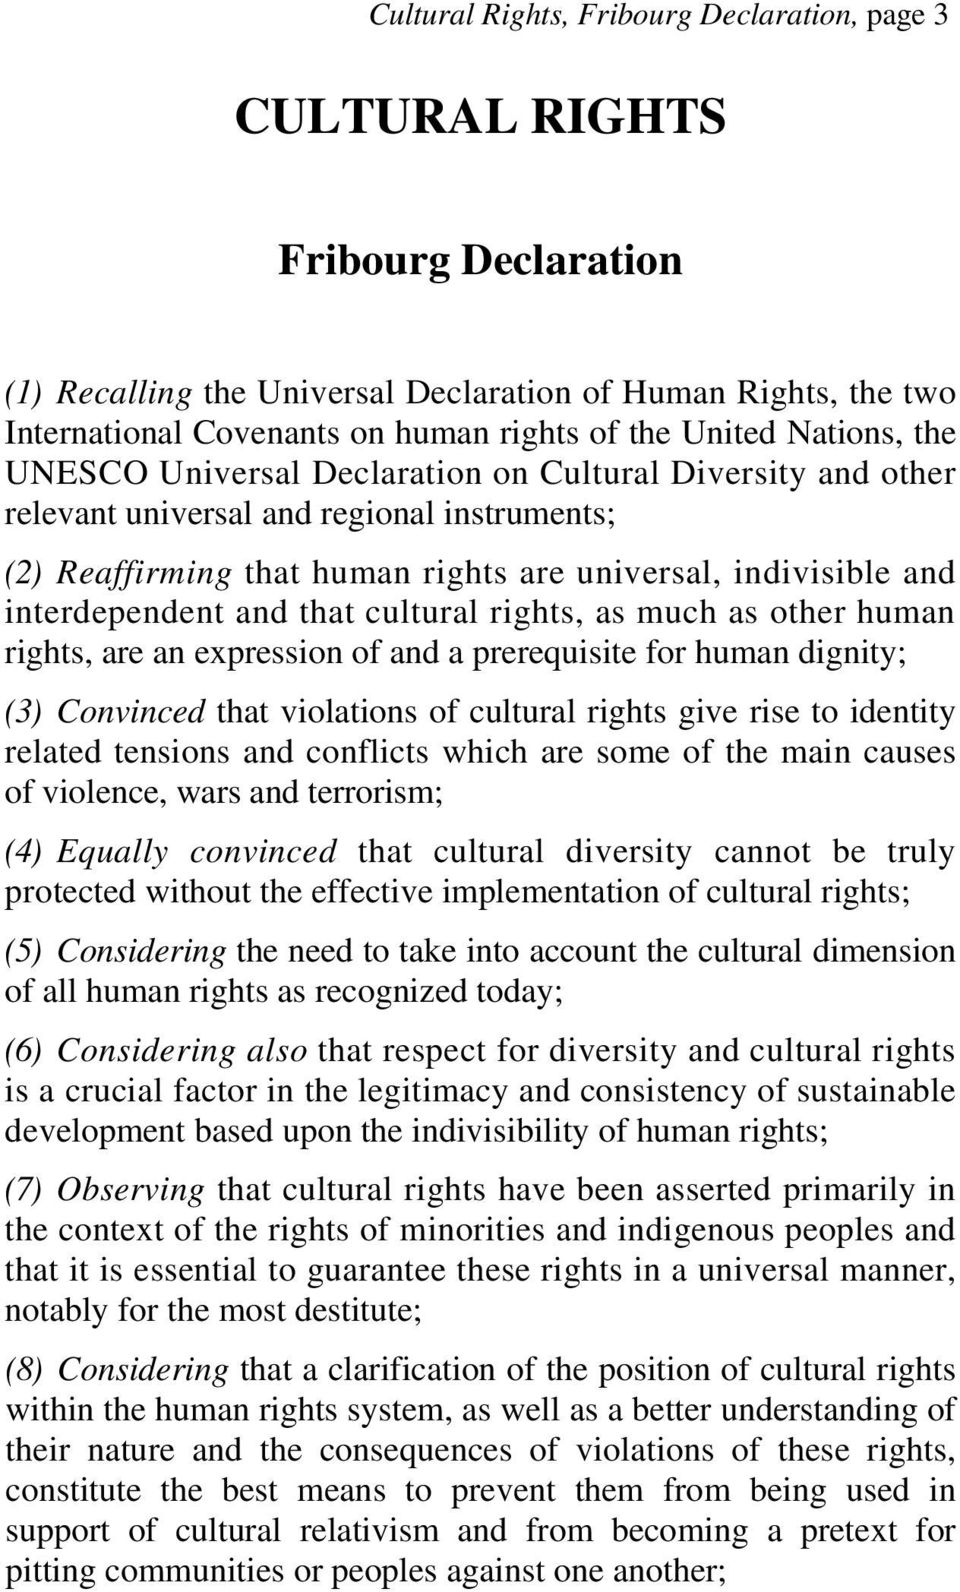 interdependent and that cultural rights, as much as other human rights, are an expression of and a prerequisite for human dignity; (3) Convinced that violations of cultural rights give rise to